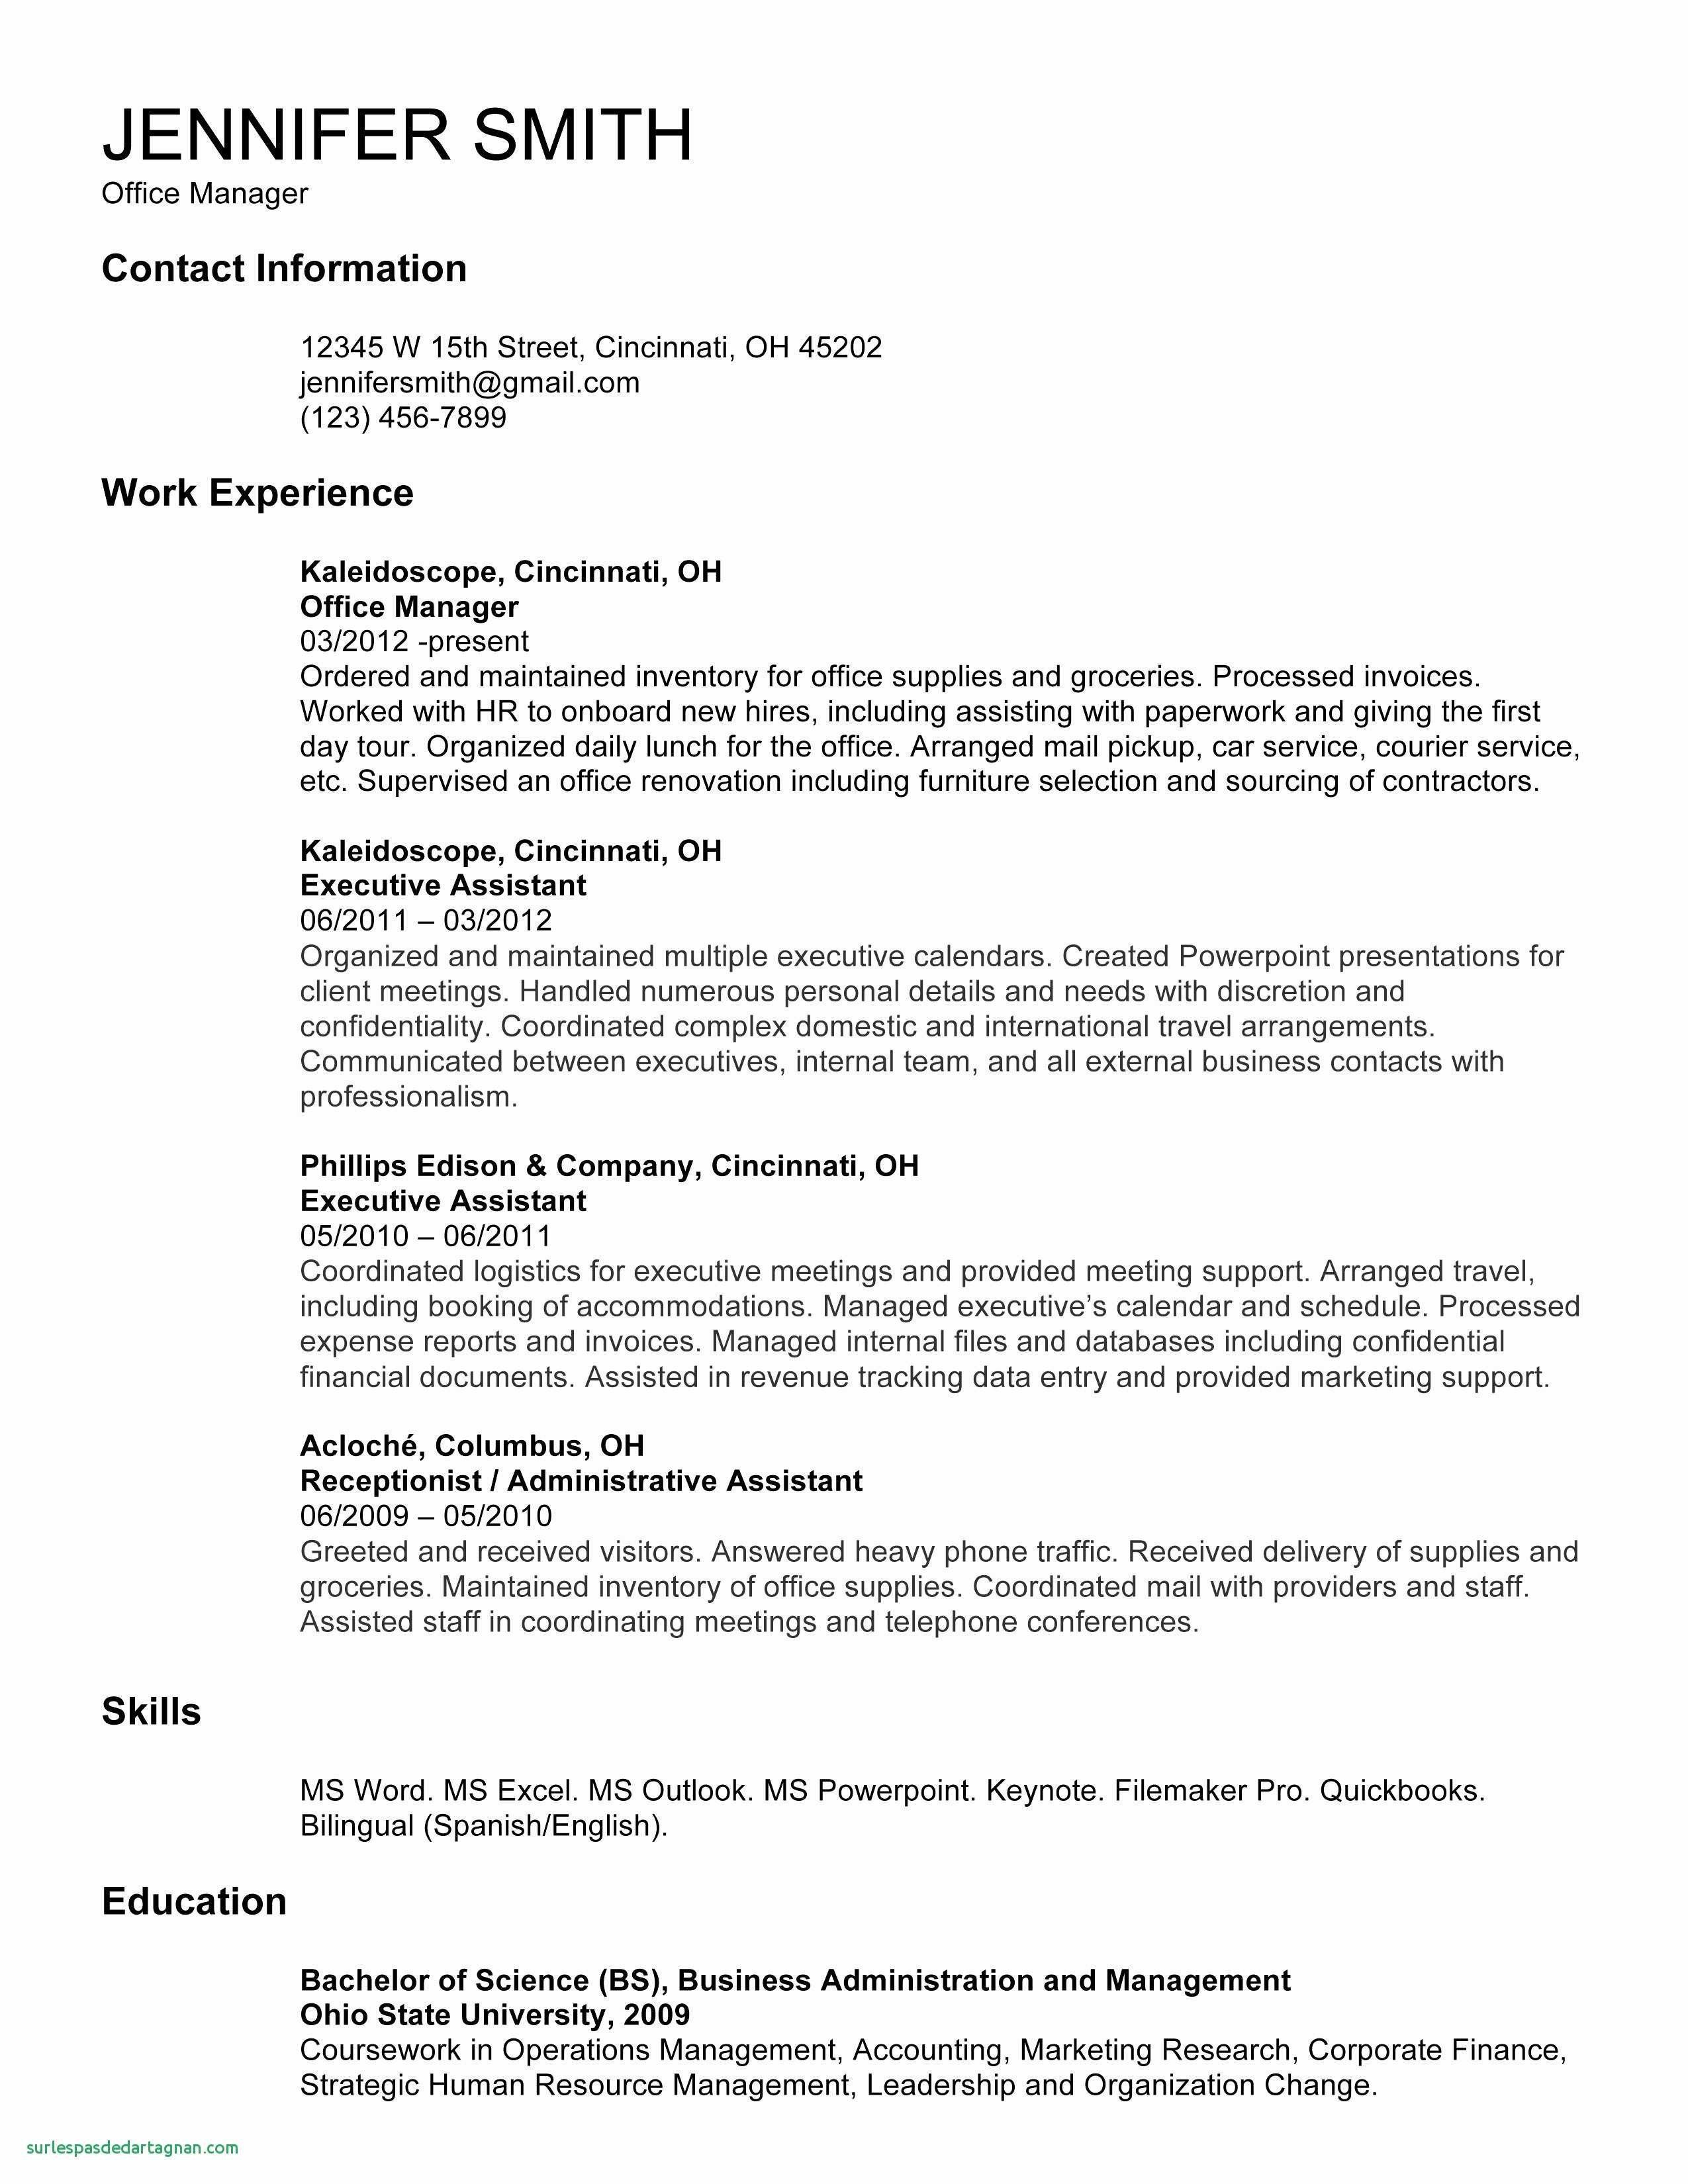 resume template powerpoint example-Powerpoint Resume Template – ¢Ë†Å¡ Resume Template Download Free Luxury Empty Resume 0d Archives 12-c